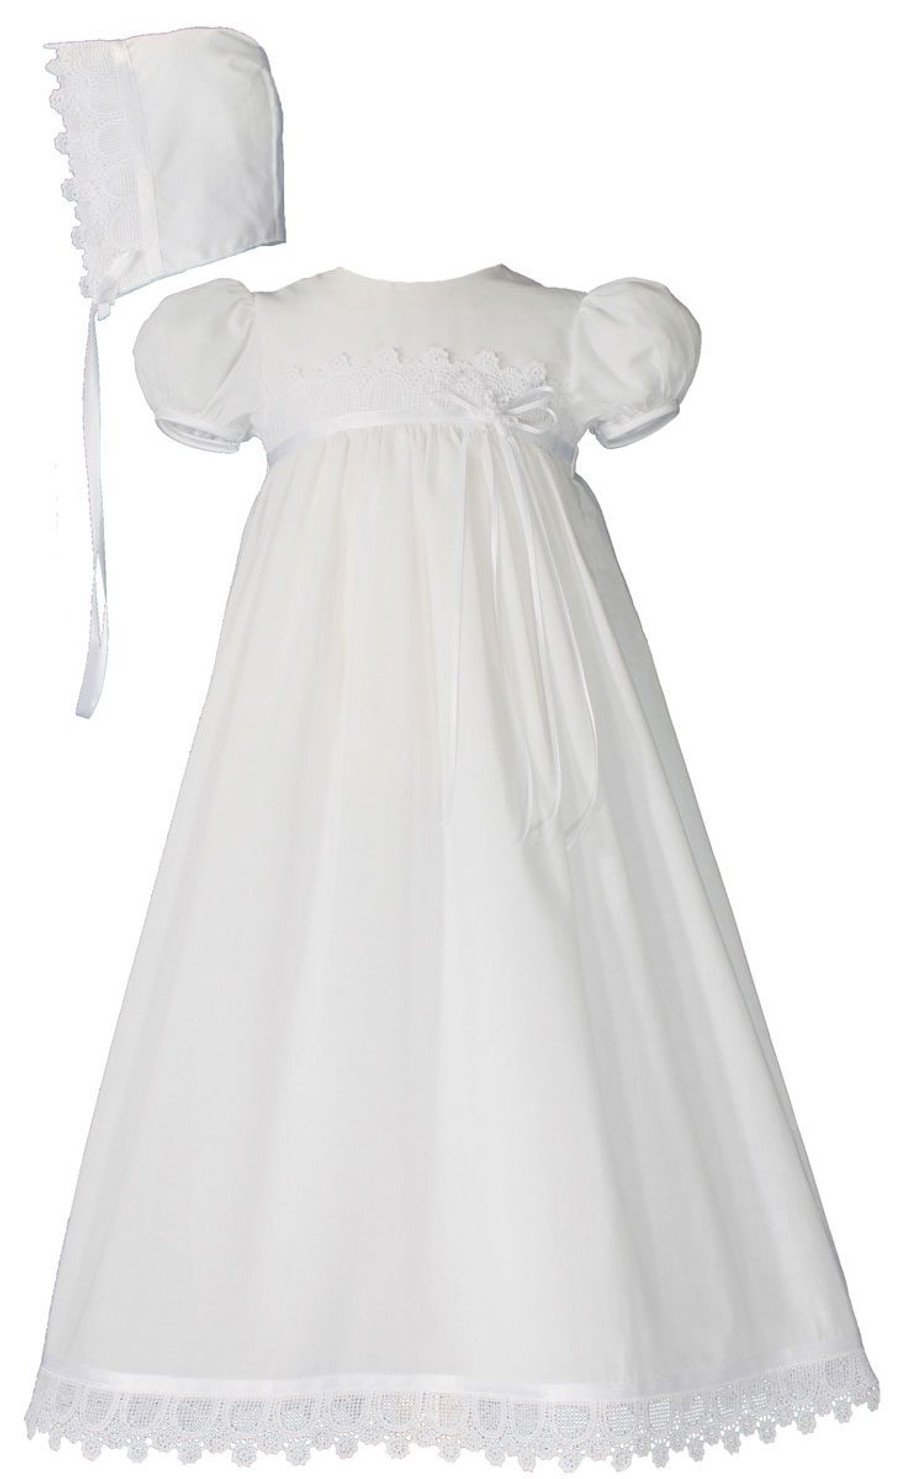 4892b27f7 Girls 26″ Cotton Christening Gown with Italian Lace